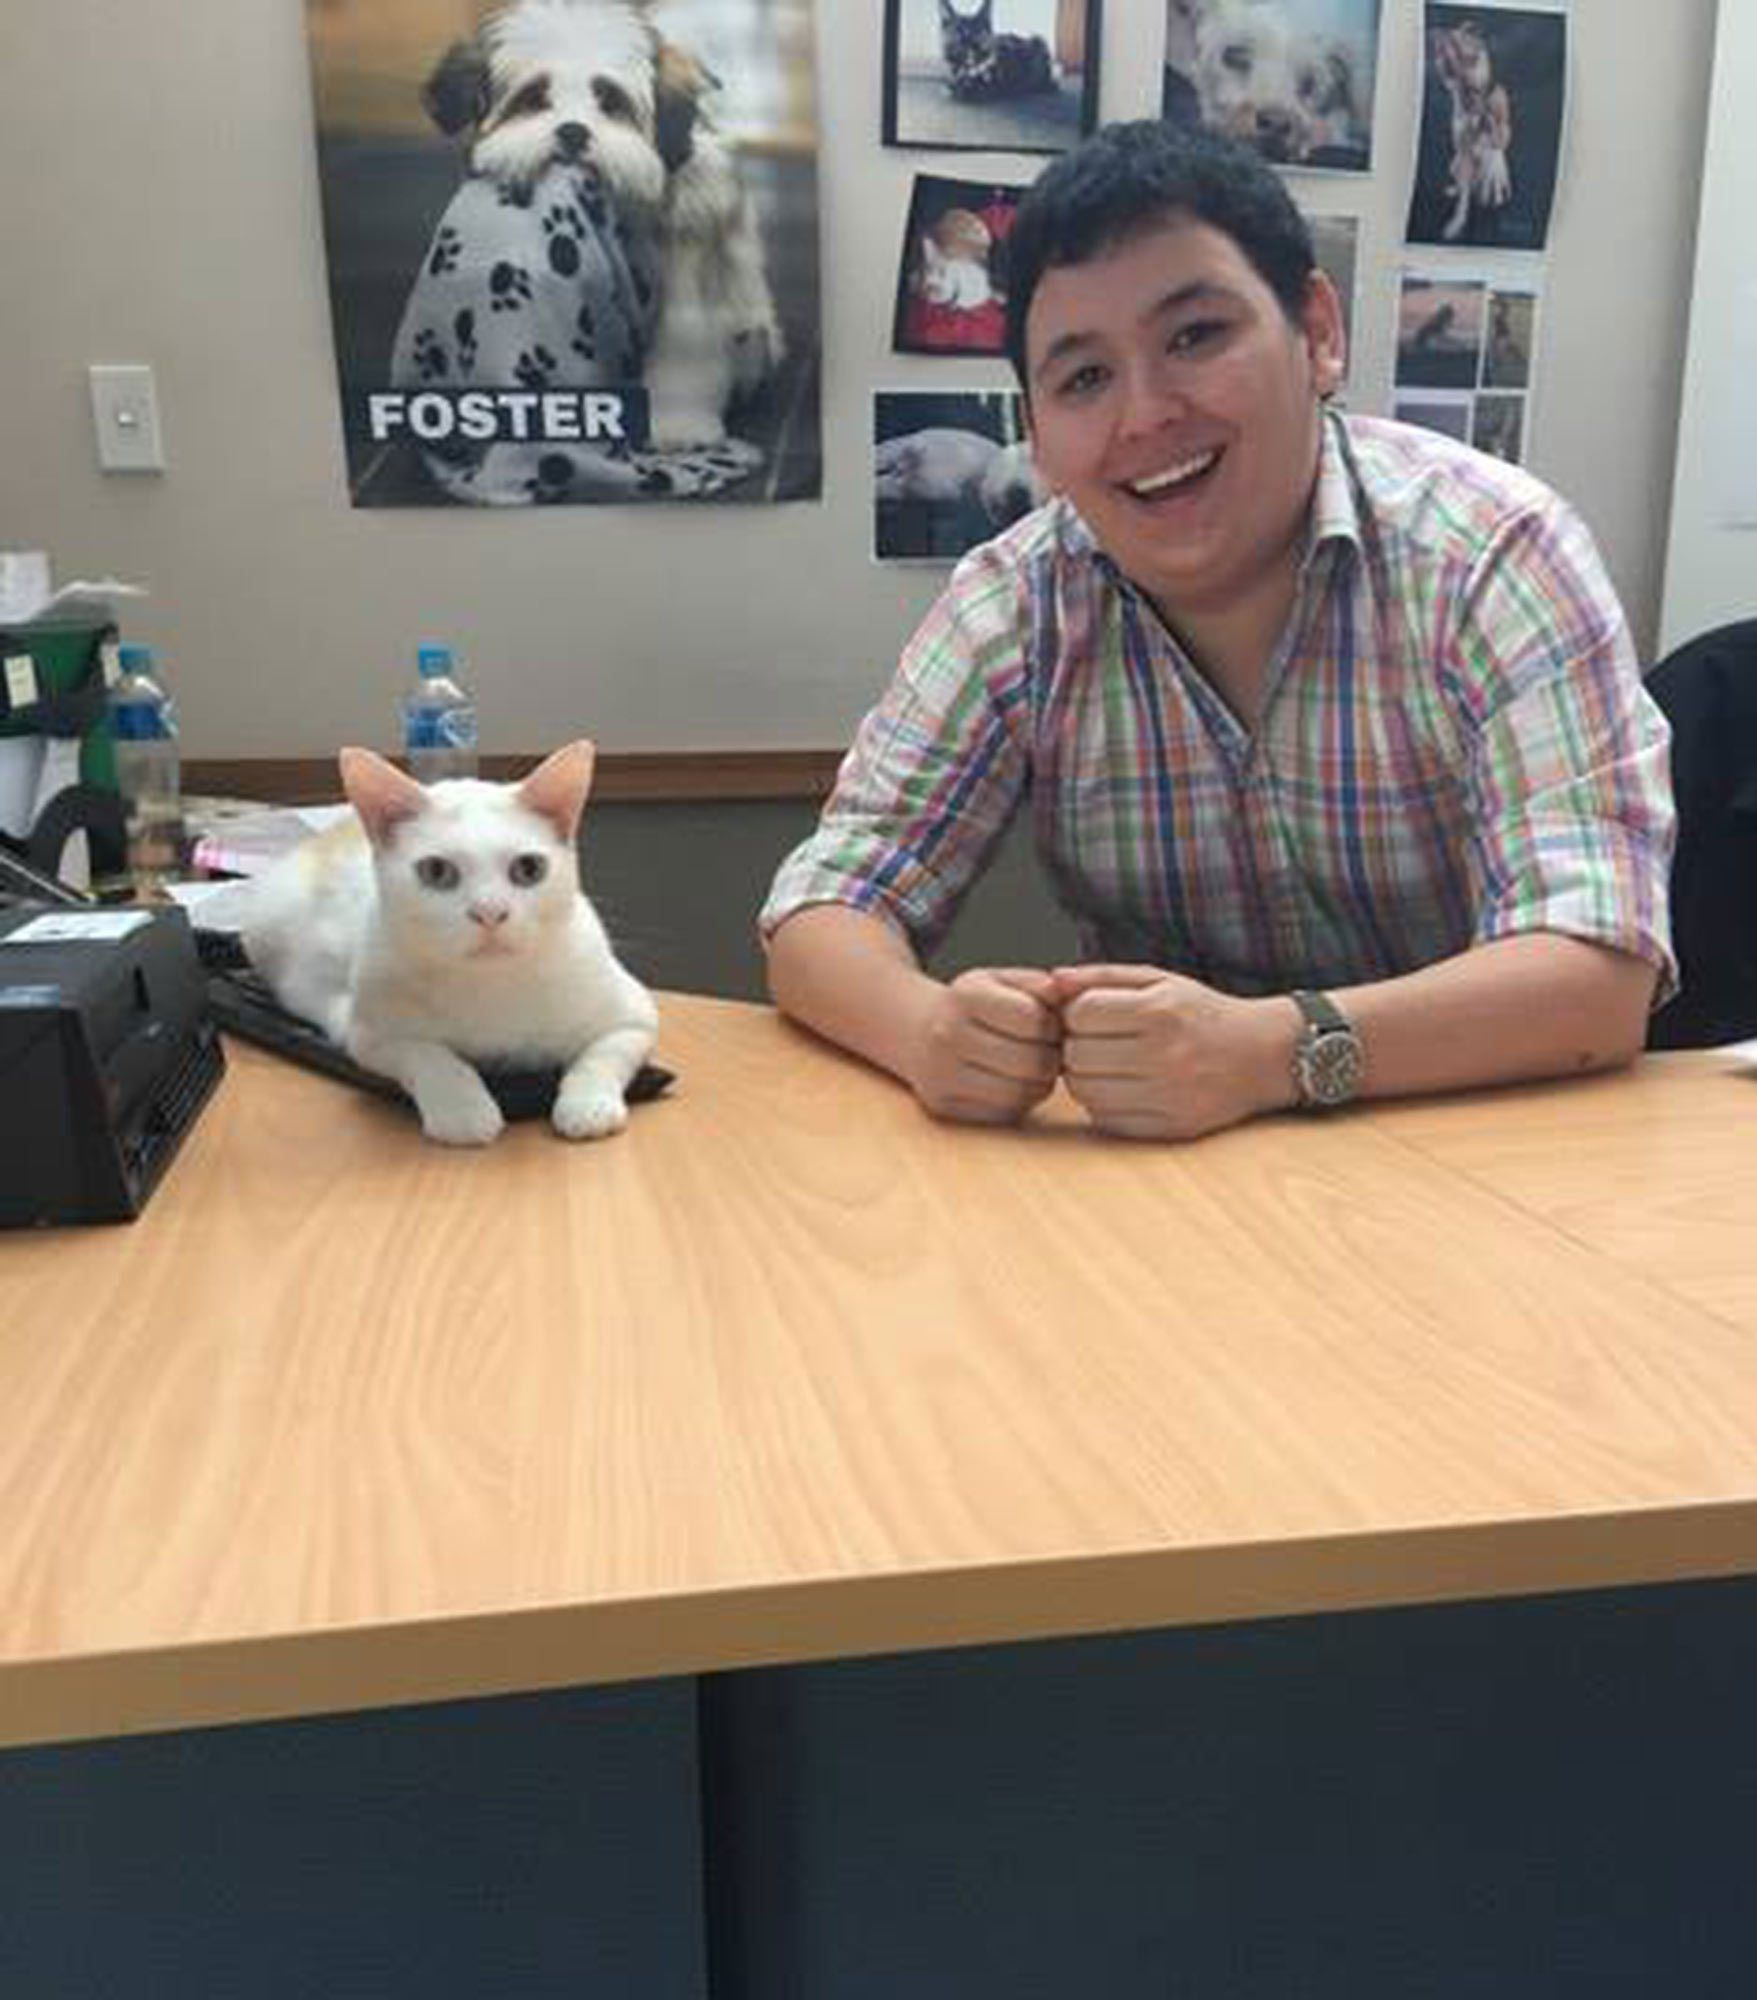 Rescue Single White Male Cat Who Lived At Shelter Over 400 Days Is Hired As Receptionist Then Finally Adopted Animal Welfare League Cats Animals